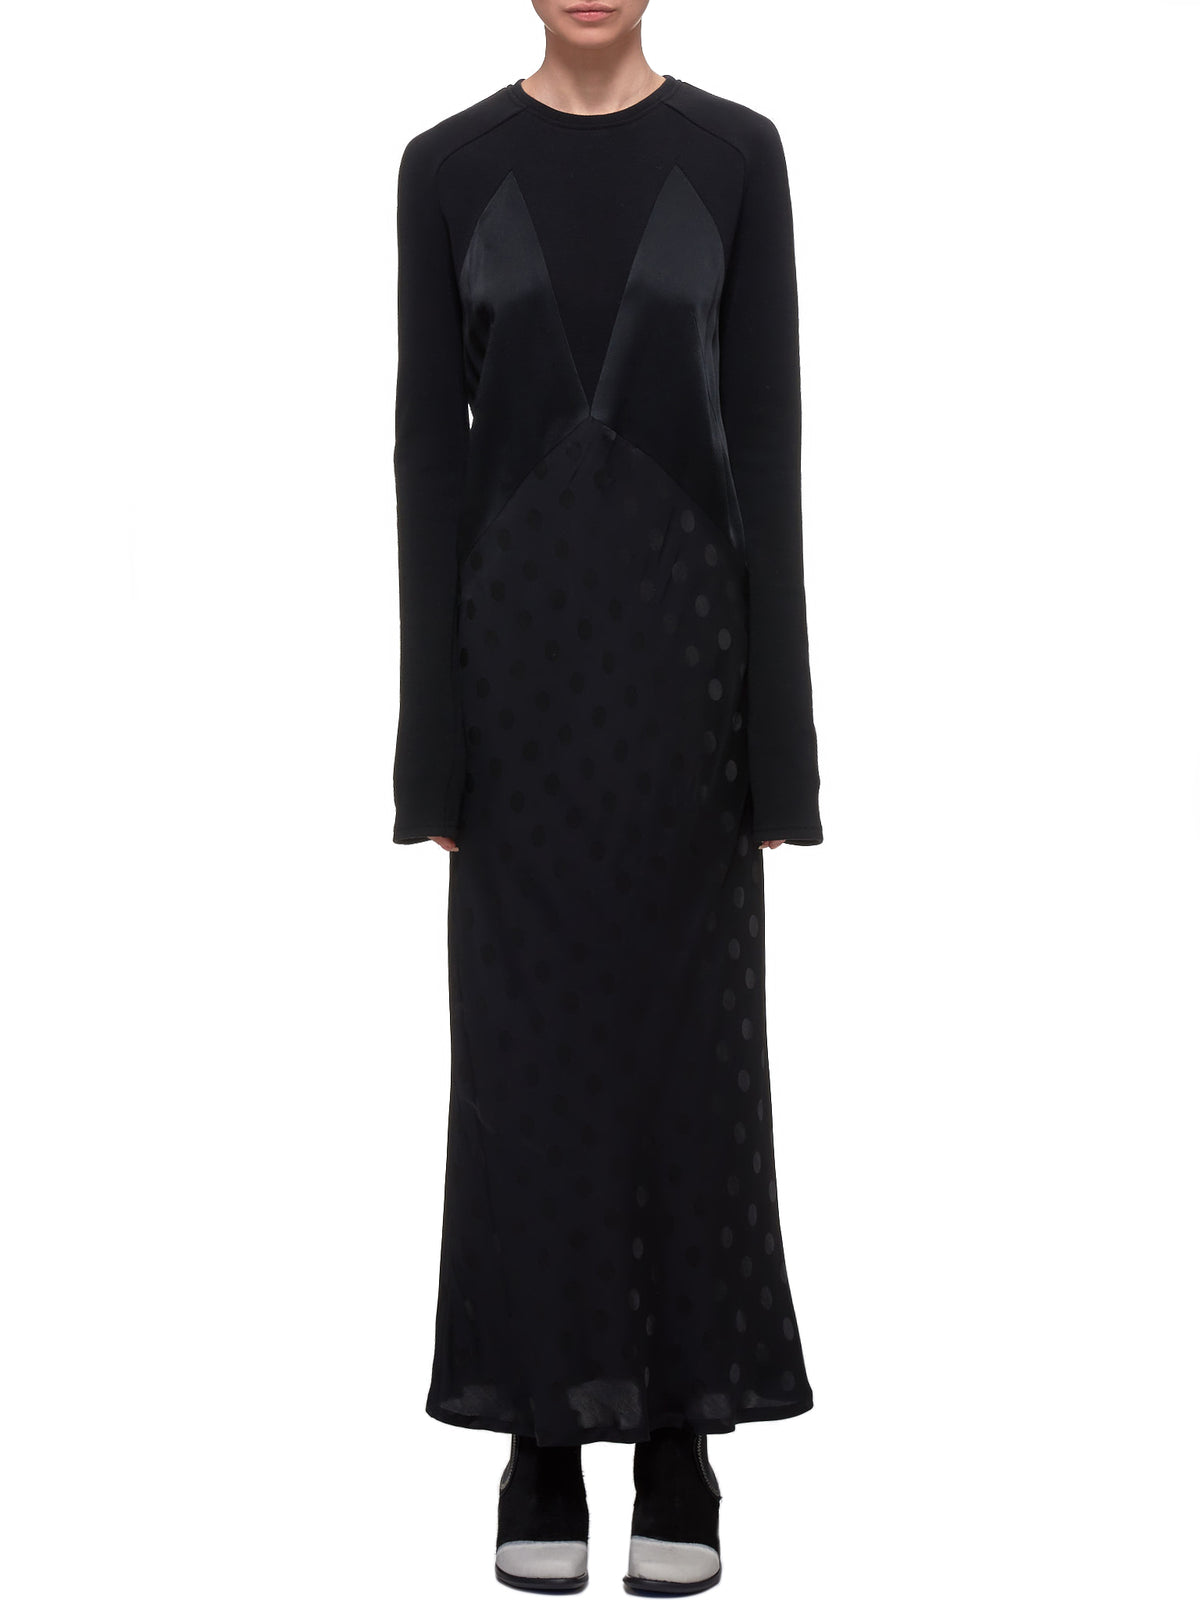 Haider Ackermann Dress - Hlorenzo Front